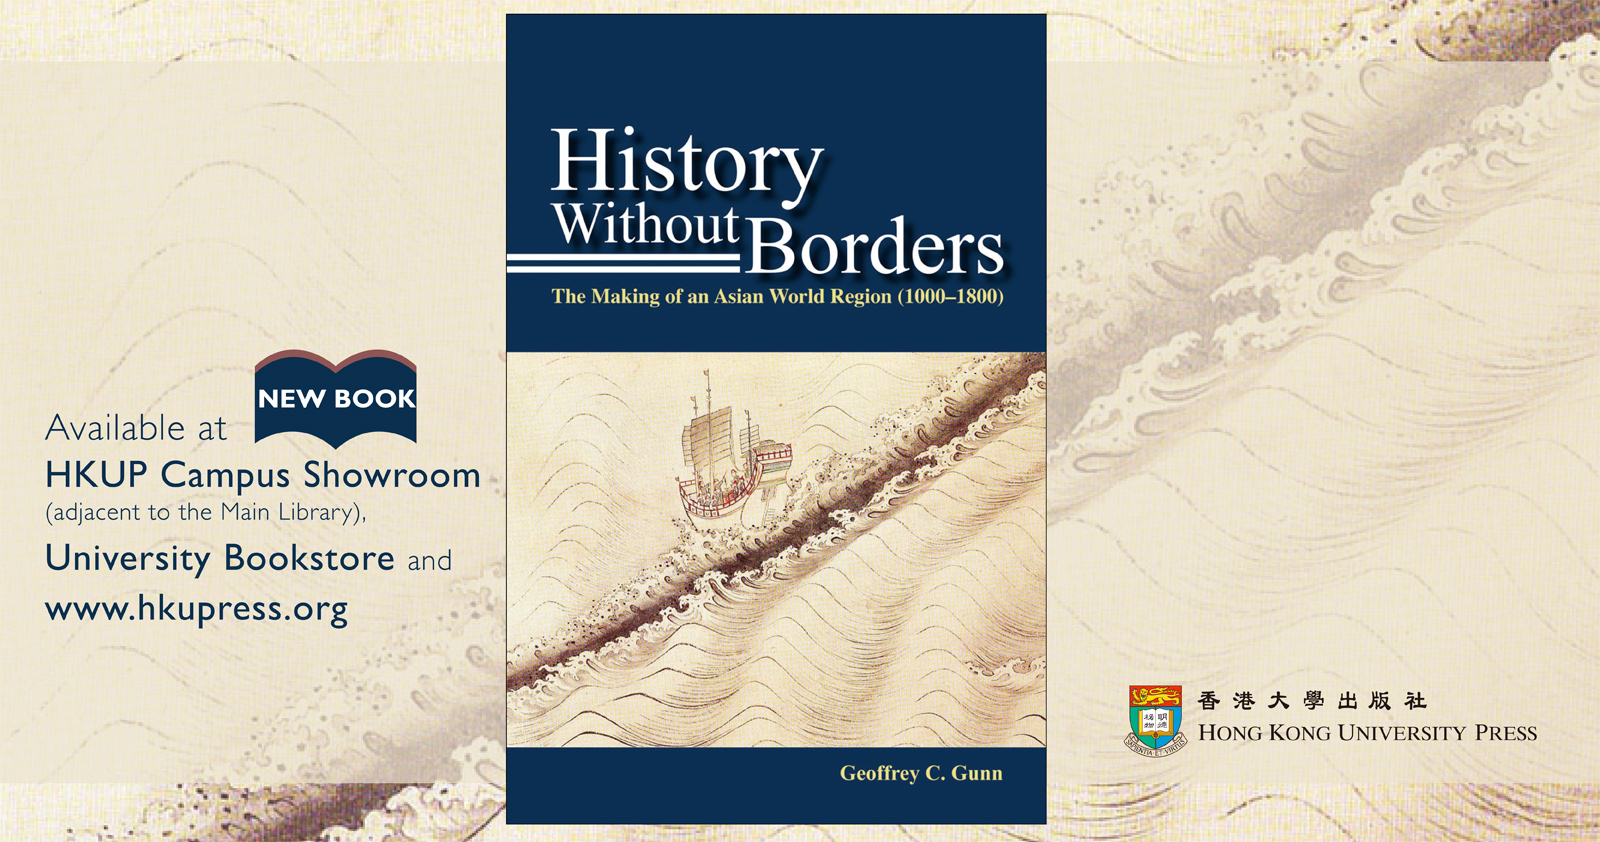 New Book from HKU Press - History Without Borders.